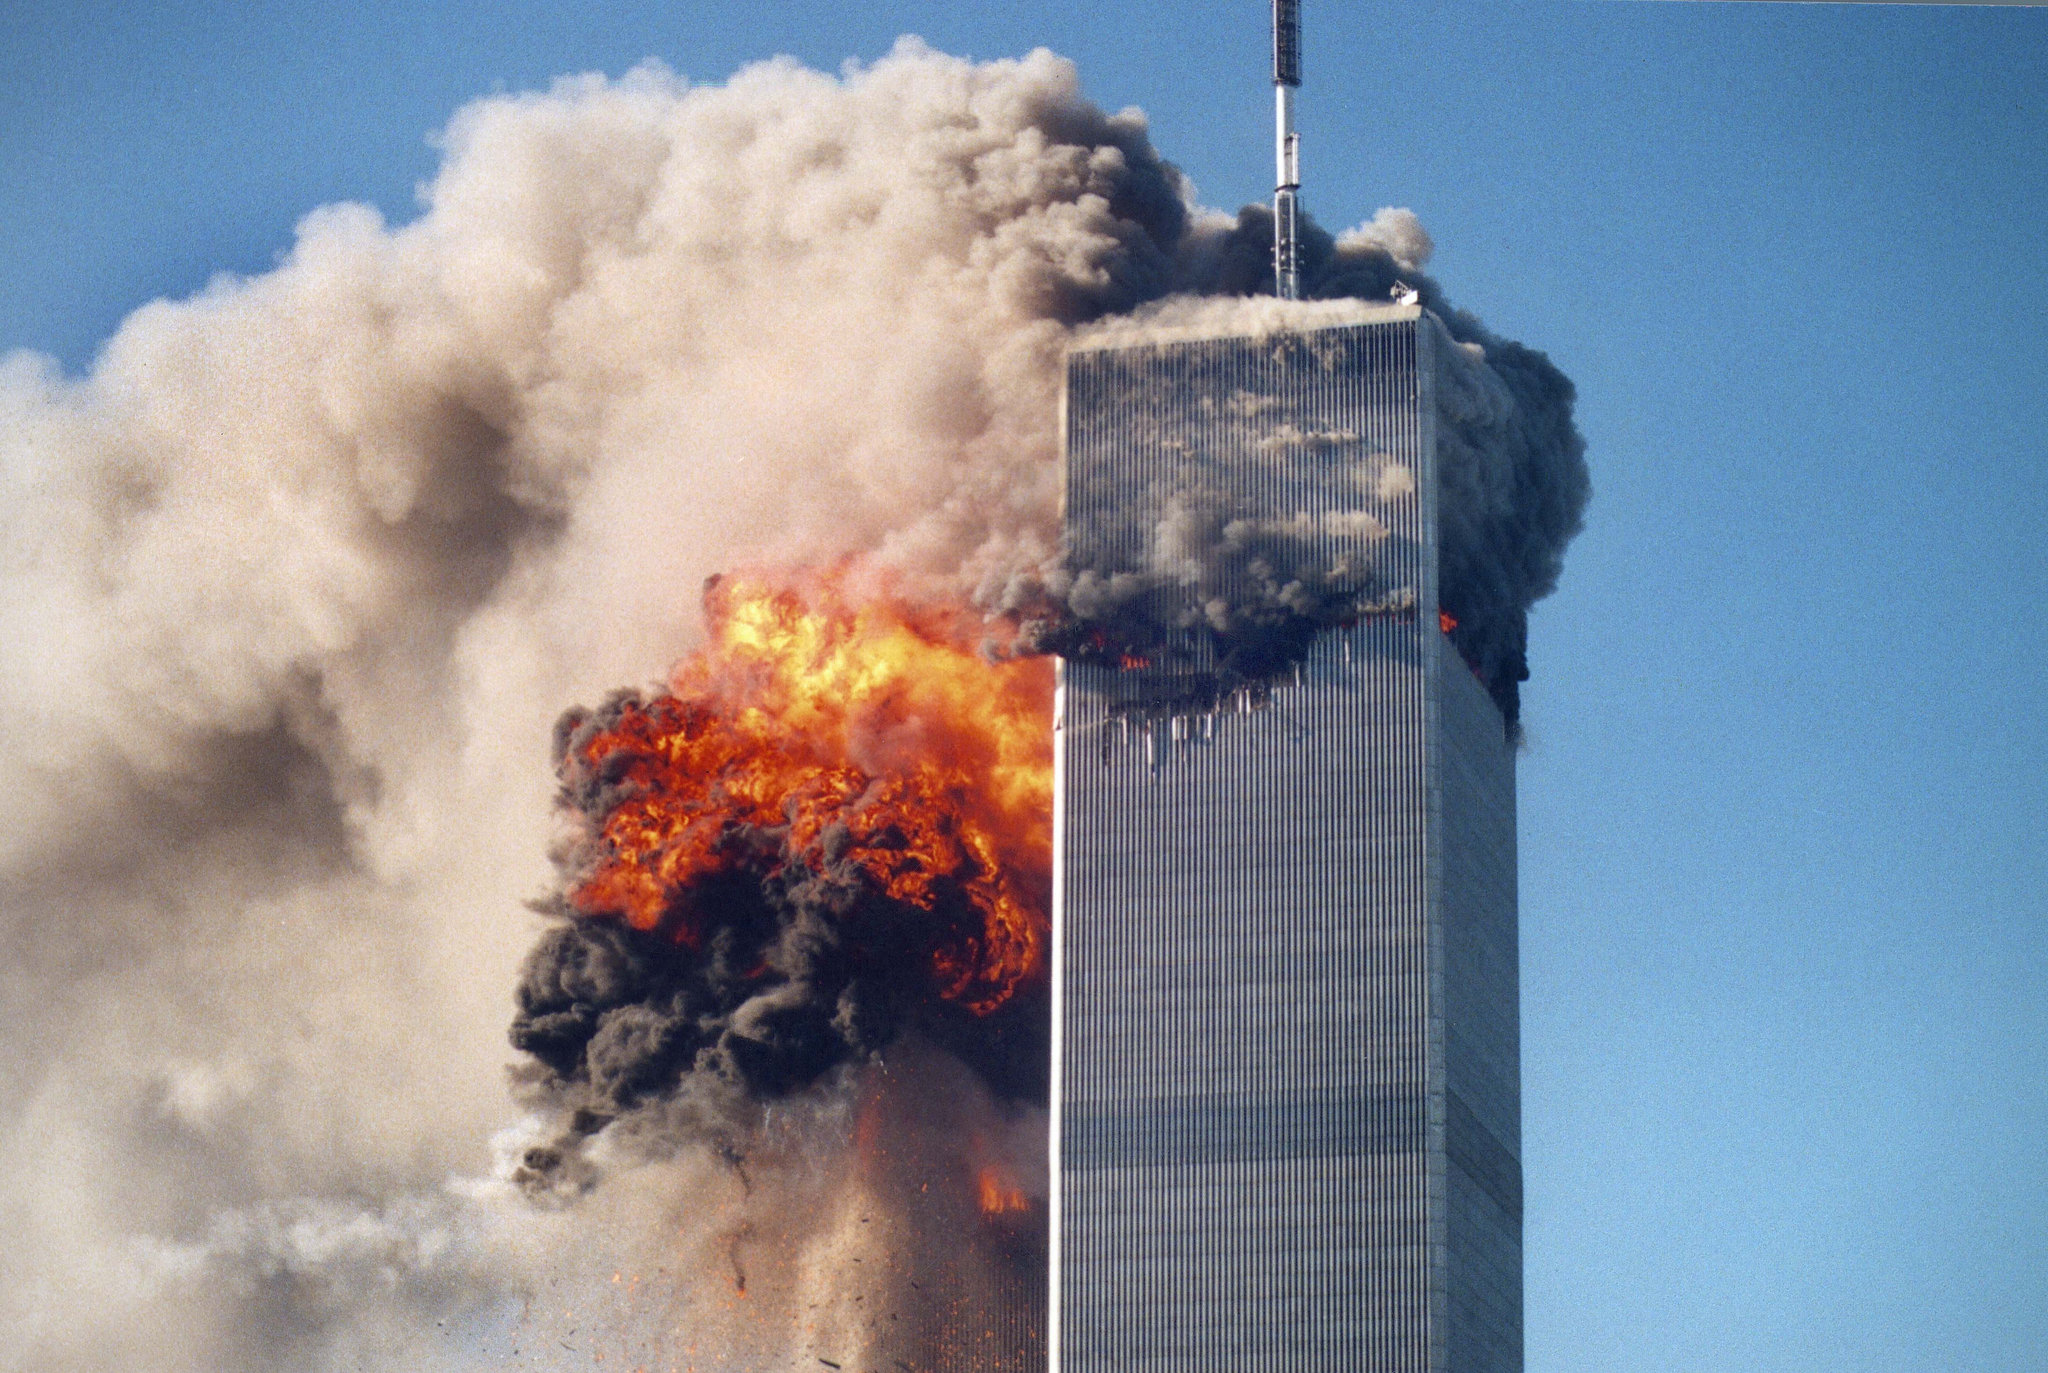 Outdone by ISIS in popularity charts, Al-Qaeda could be planning 9/11 version 2.0 to take back control!